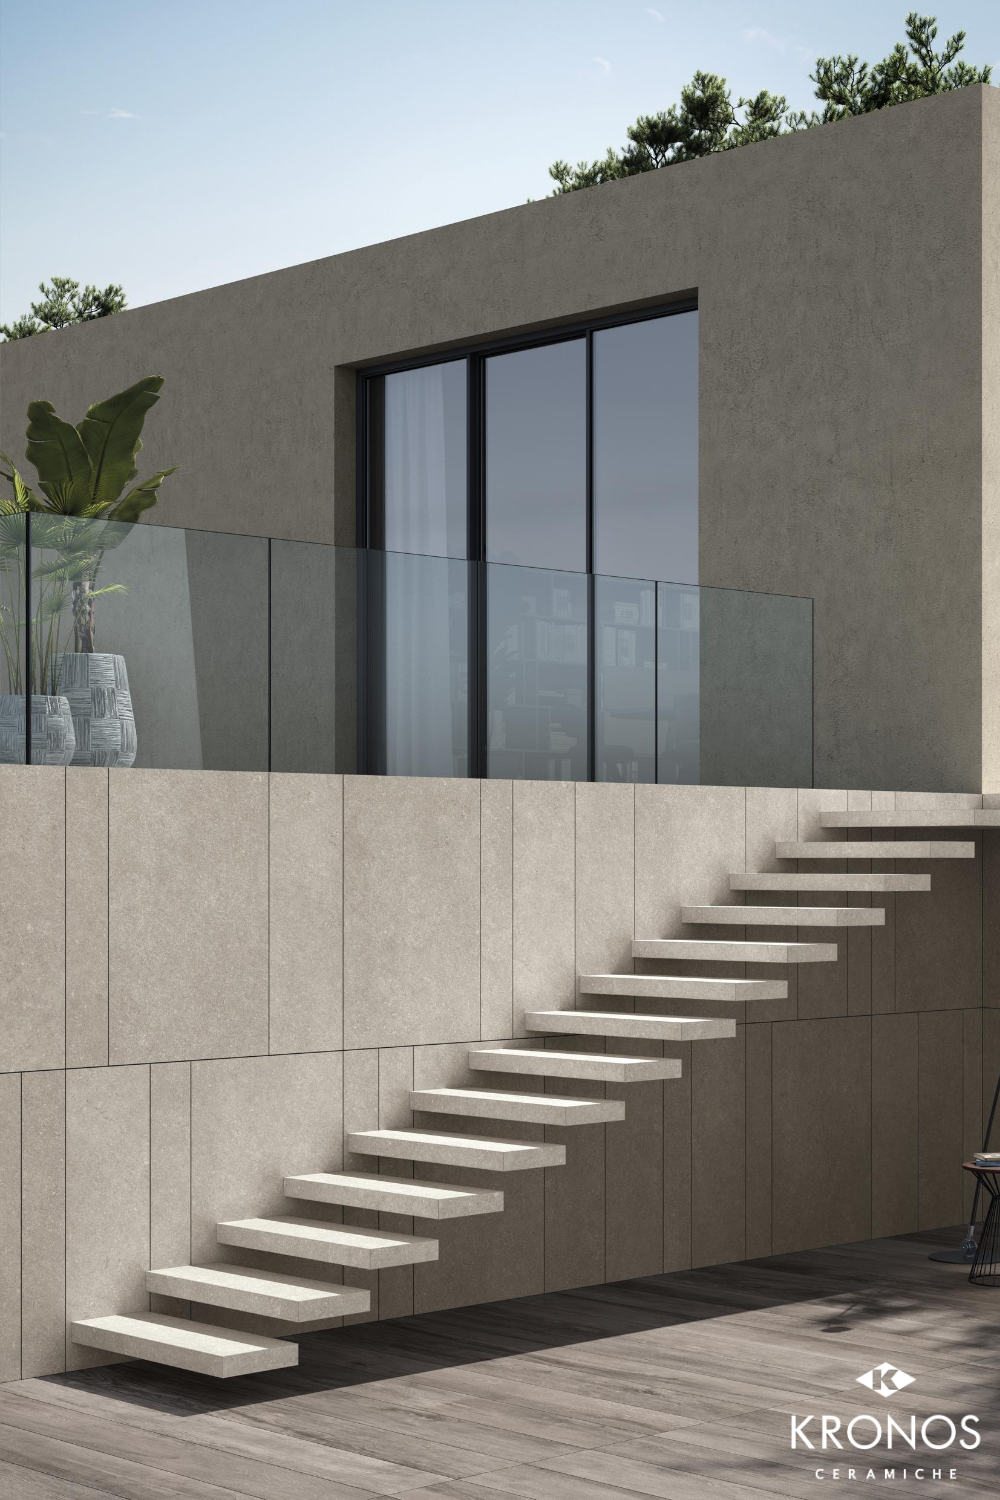 Outdoor Design Ideas Stairs With Stone Look Tiles In 2020 Stairs Stone Look Tile Outdoor Design,Pltw Engineering Design And Development Projects